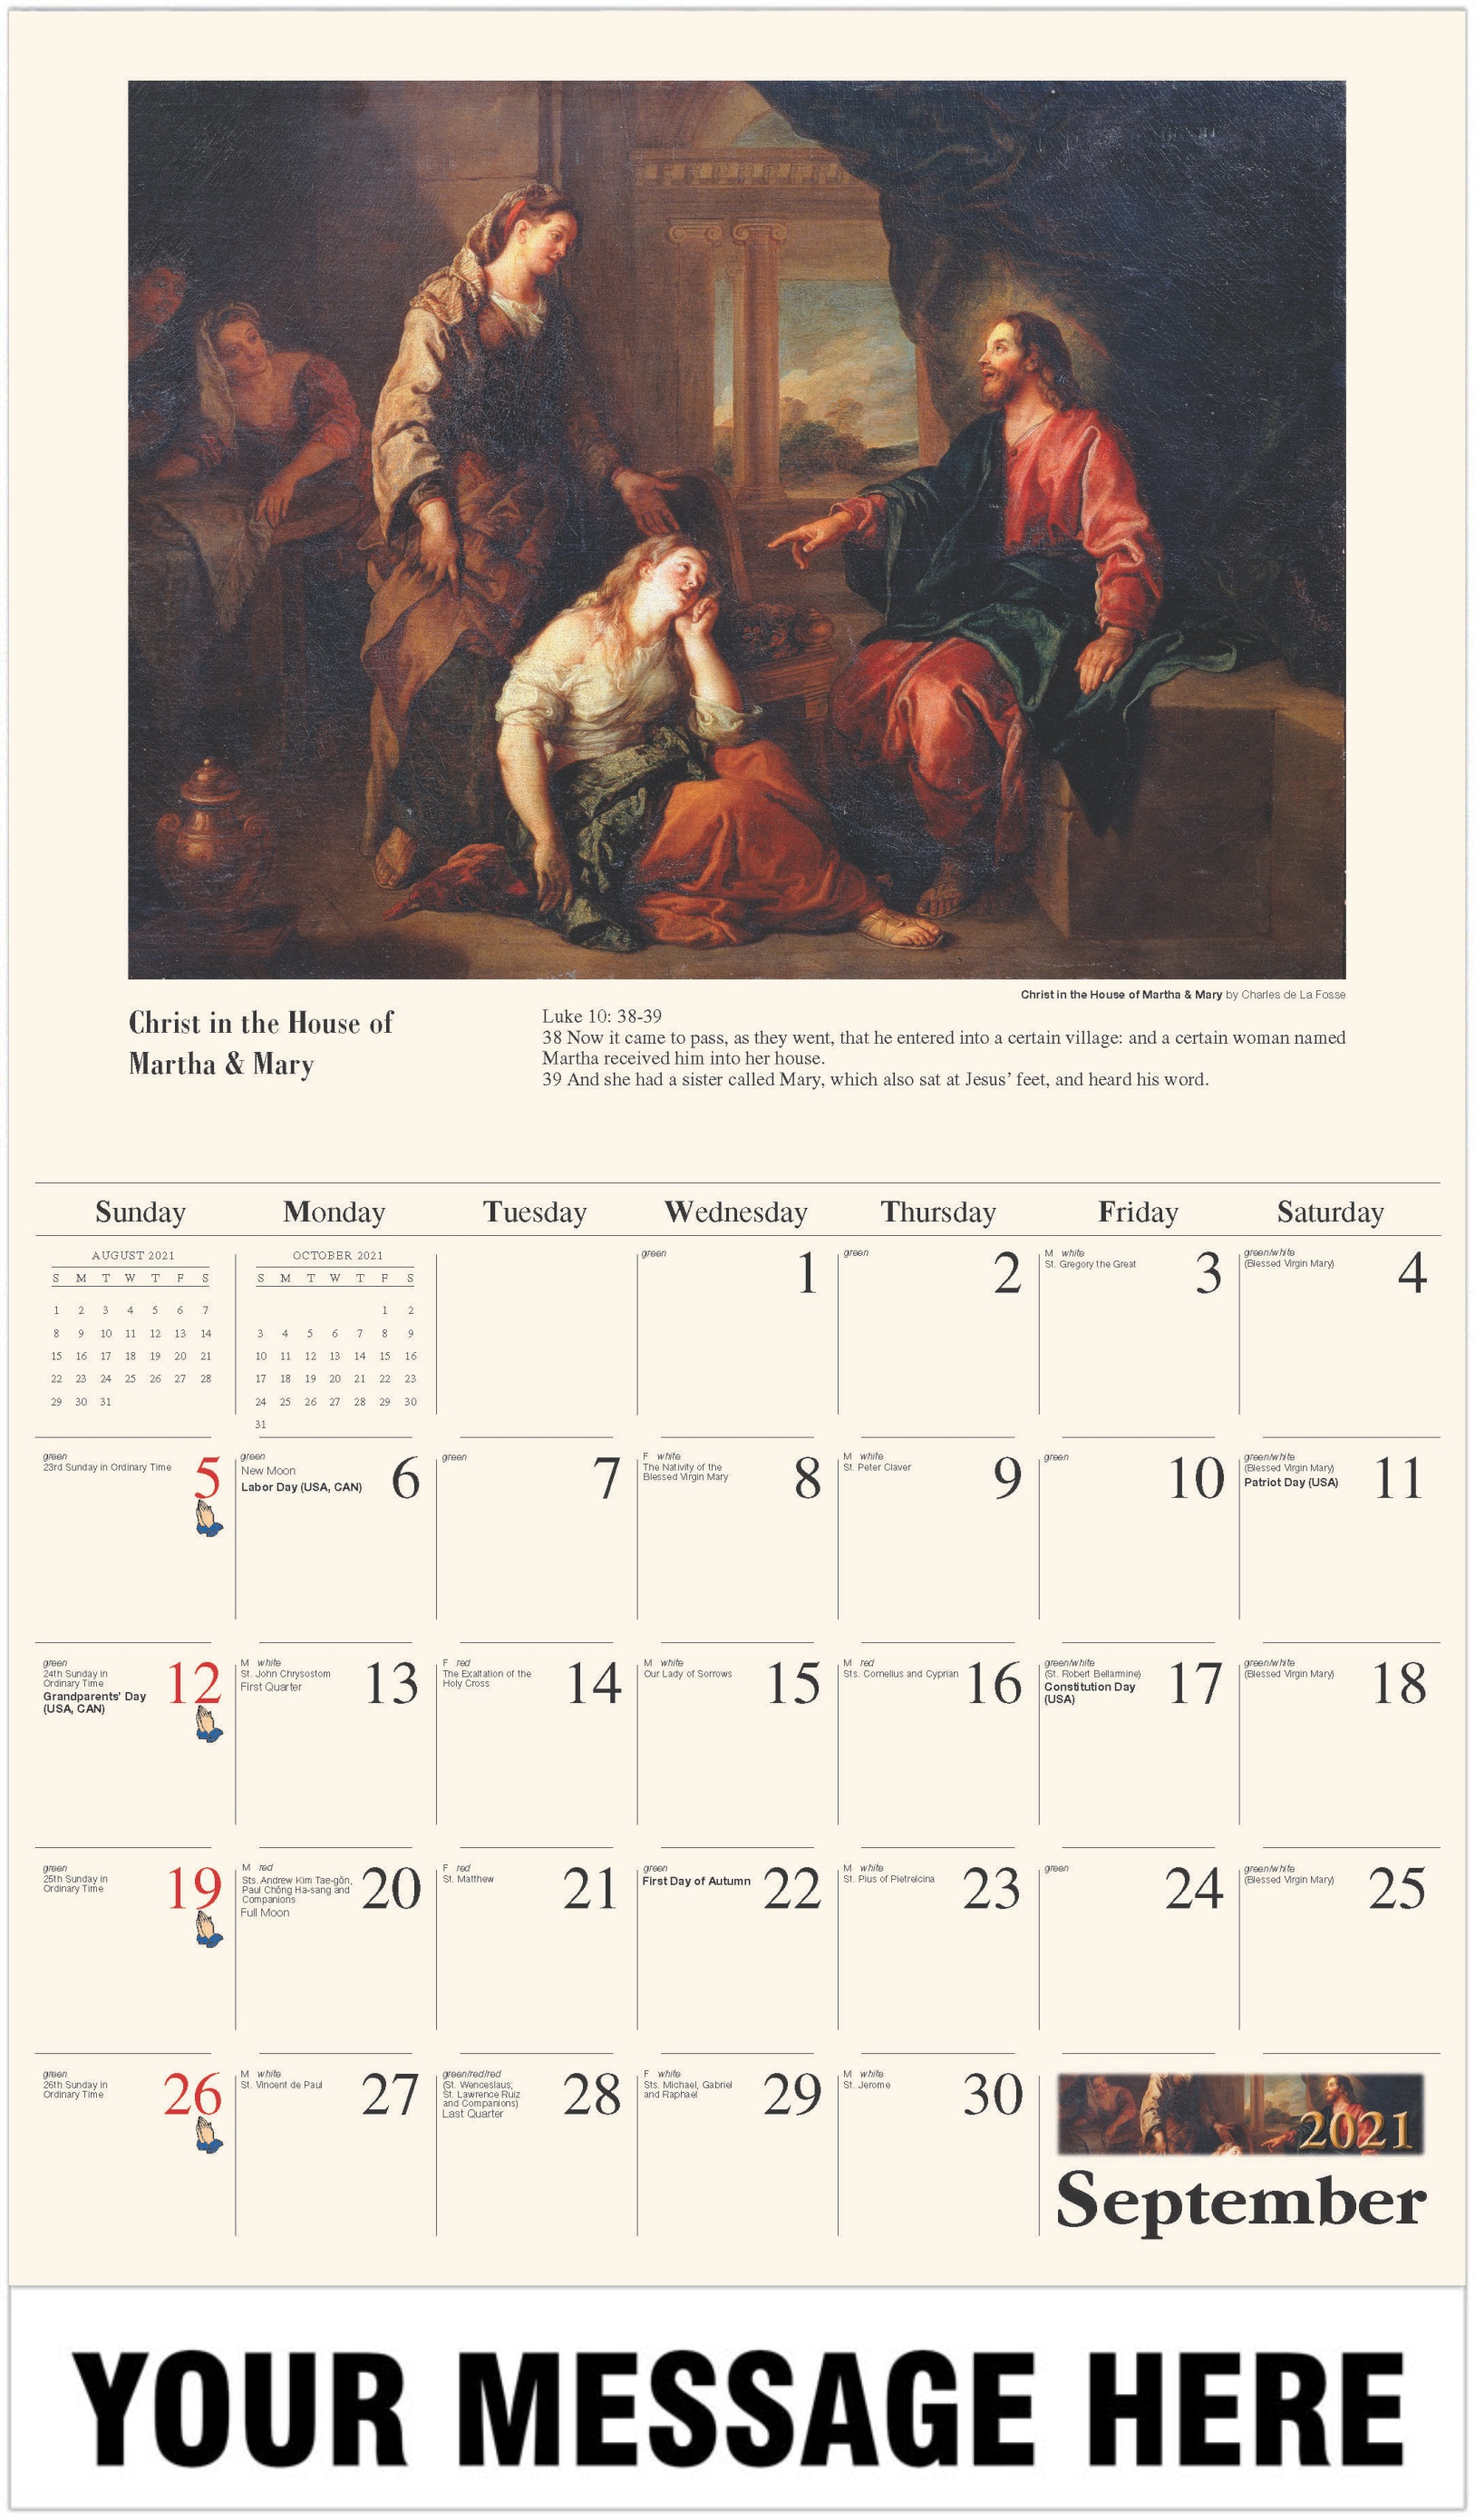 Christ in the House of Martha and Mary - September - Catholic Inspiration 2021 Promotional Calendar